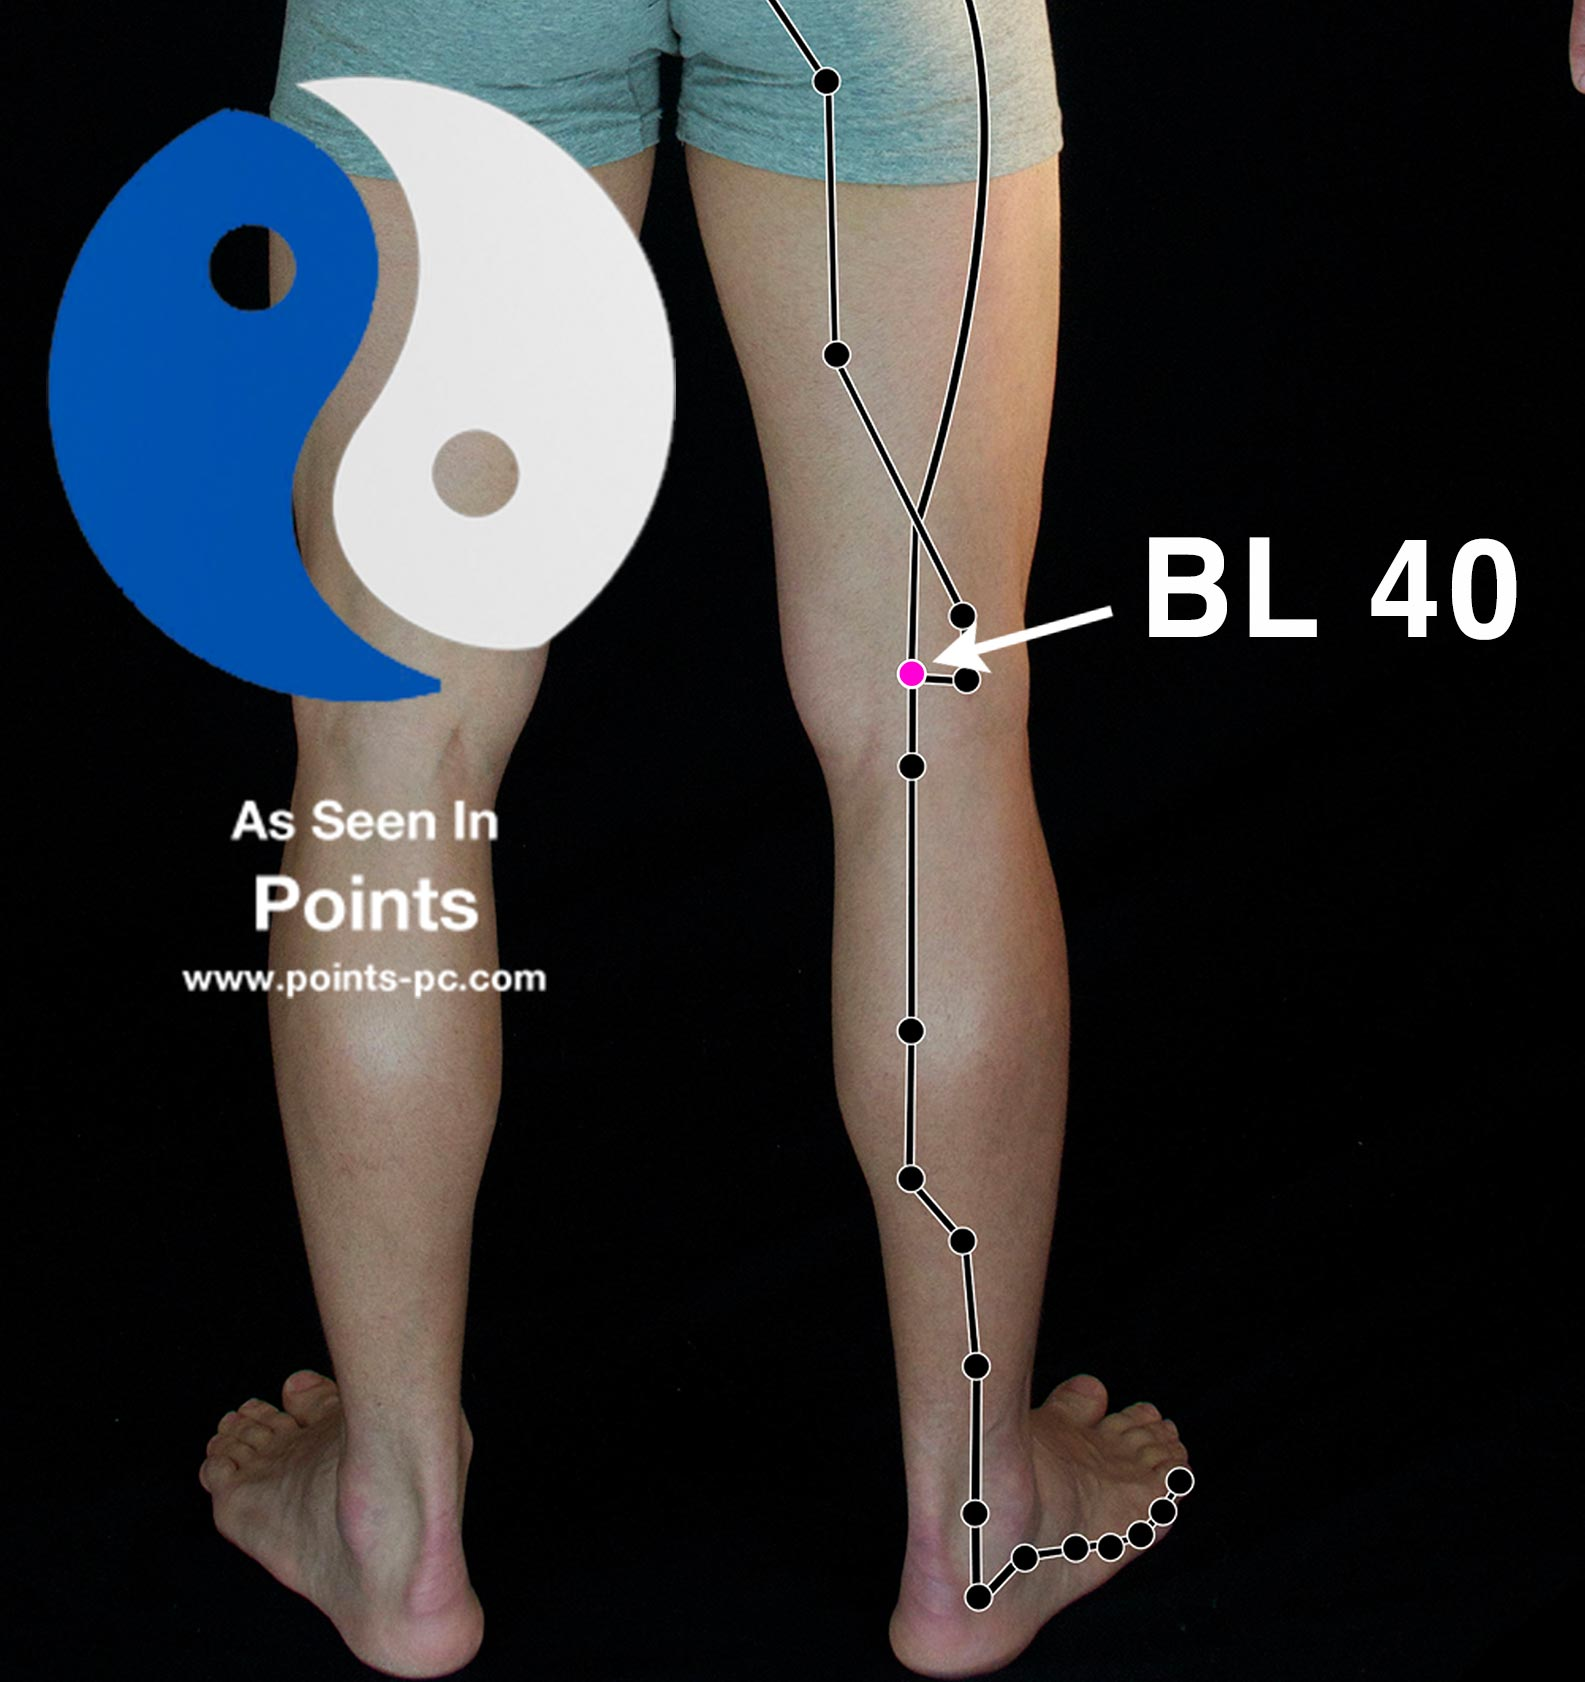 Acupuncture Point: Bladder 40 - Acupuncture Technology News